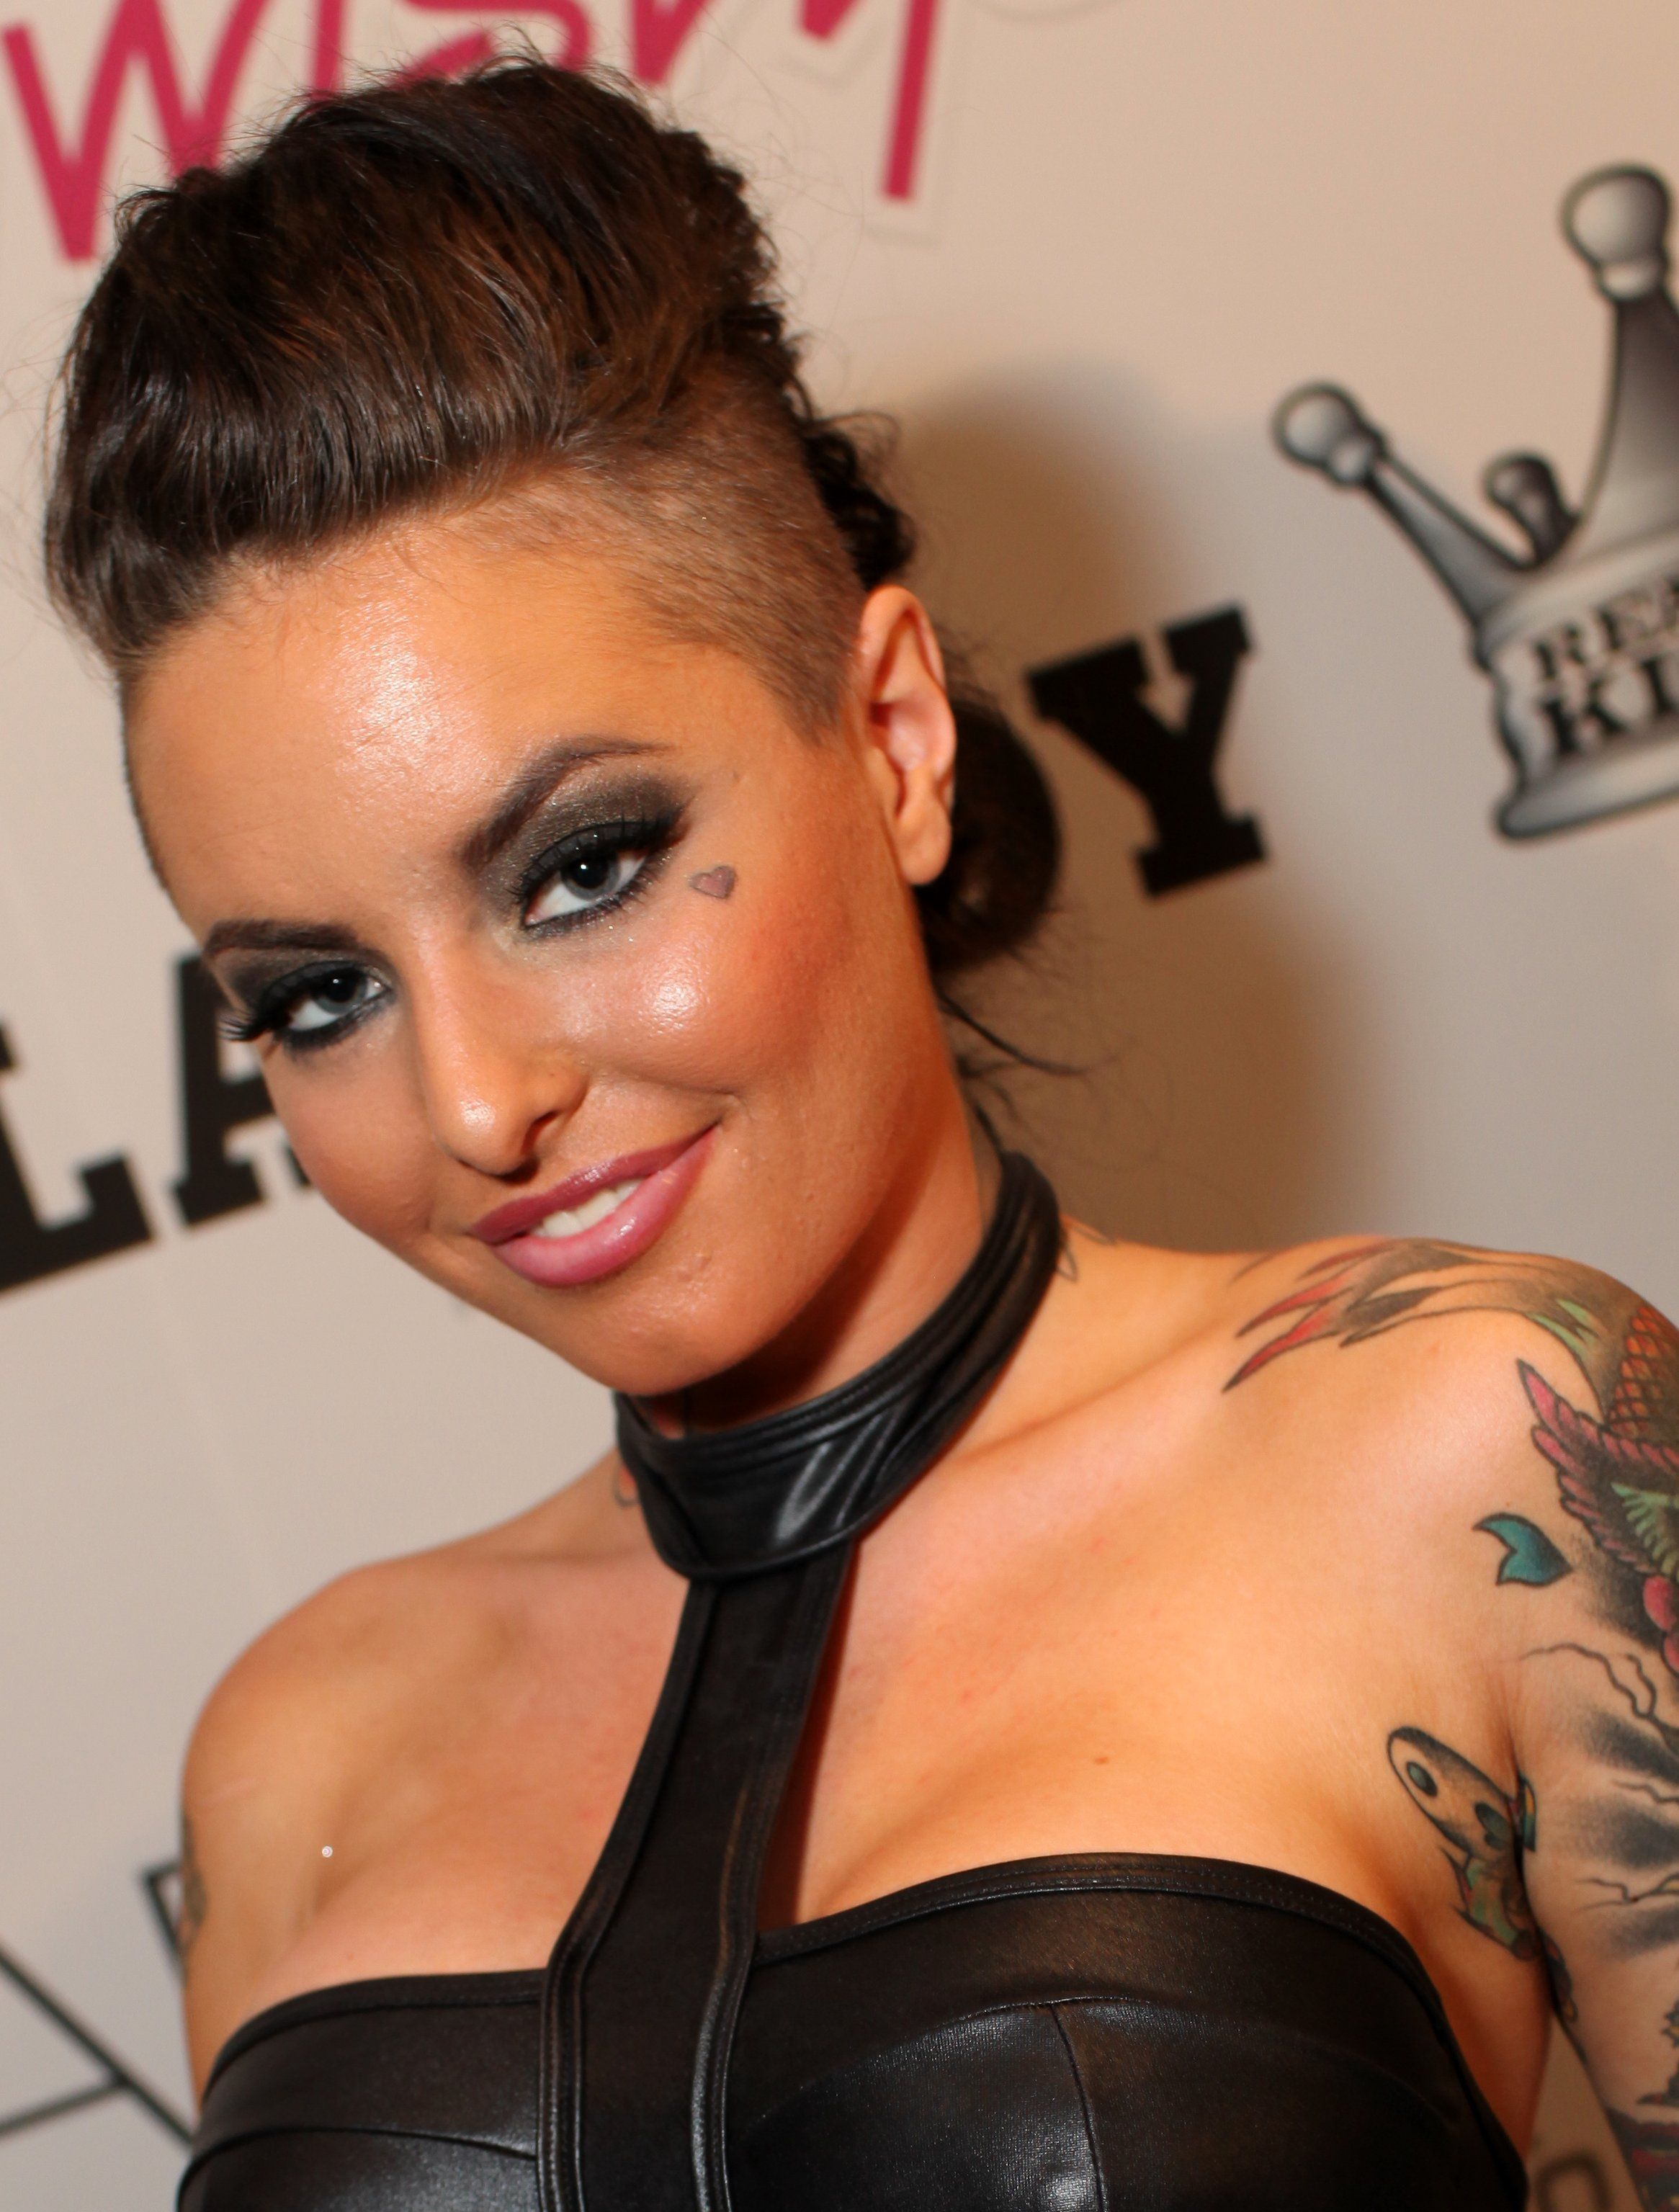 Christy Mack naked 768